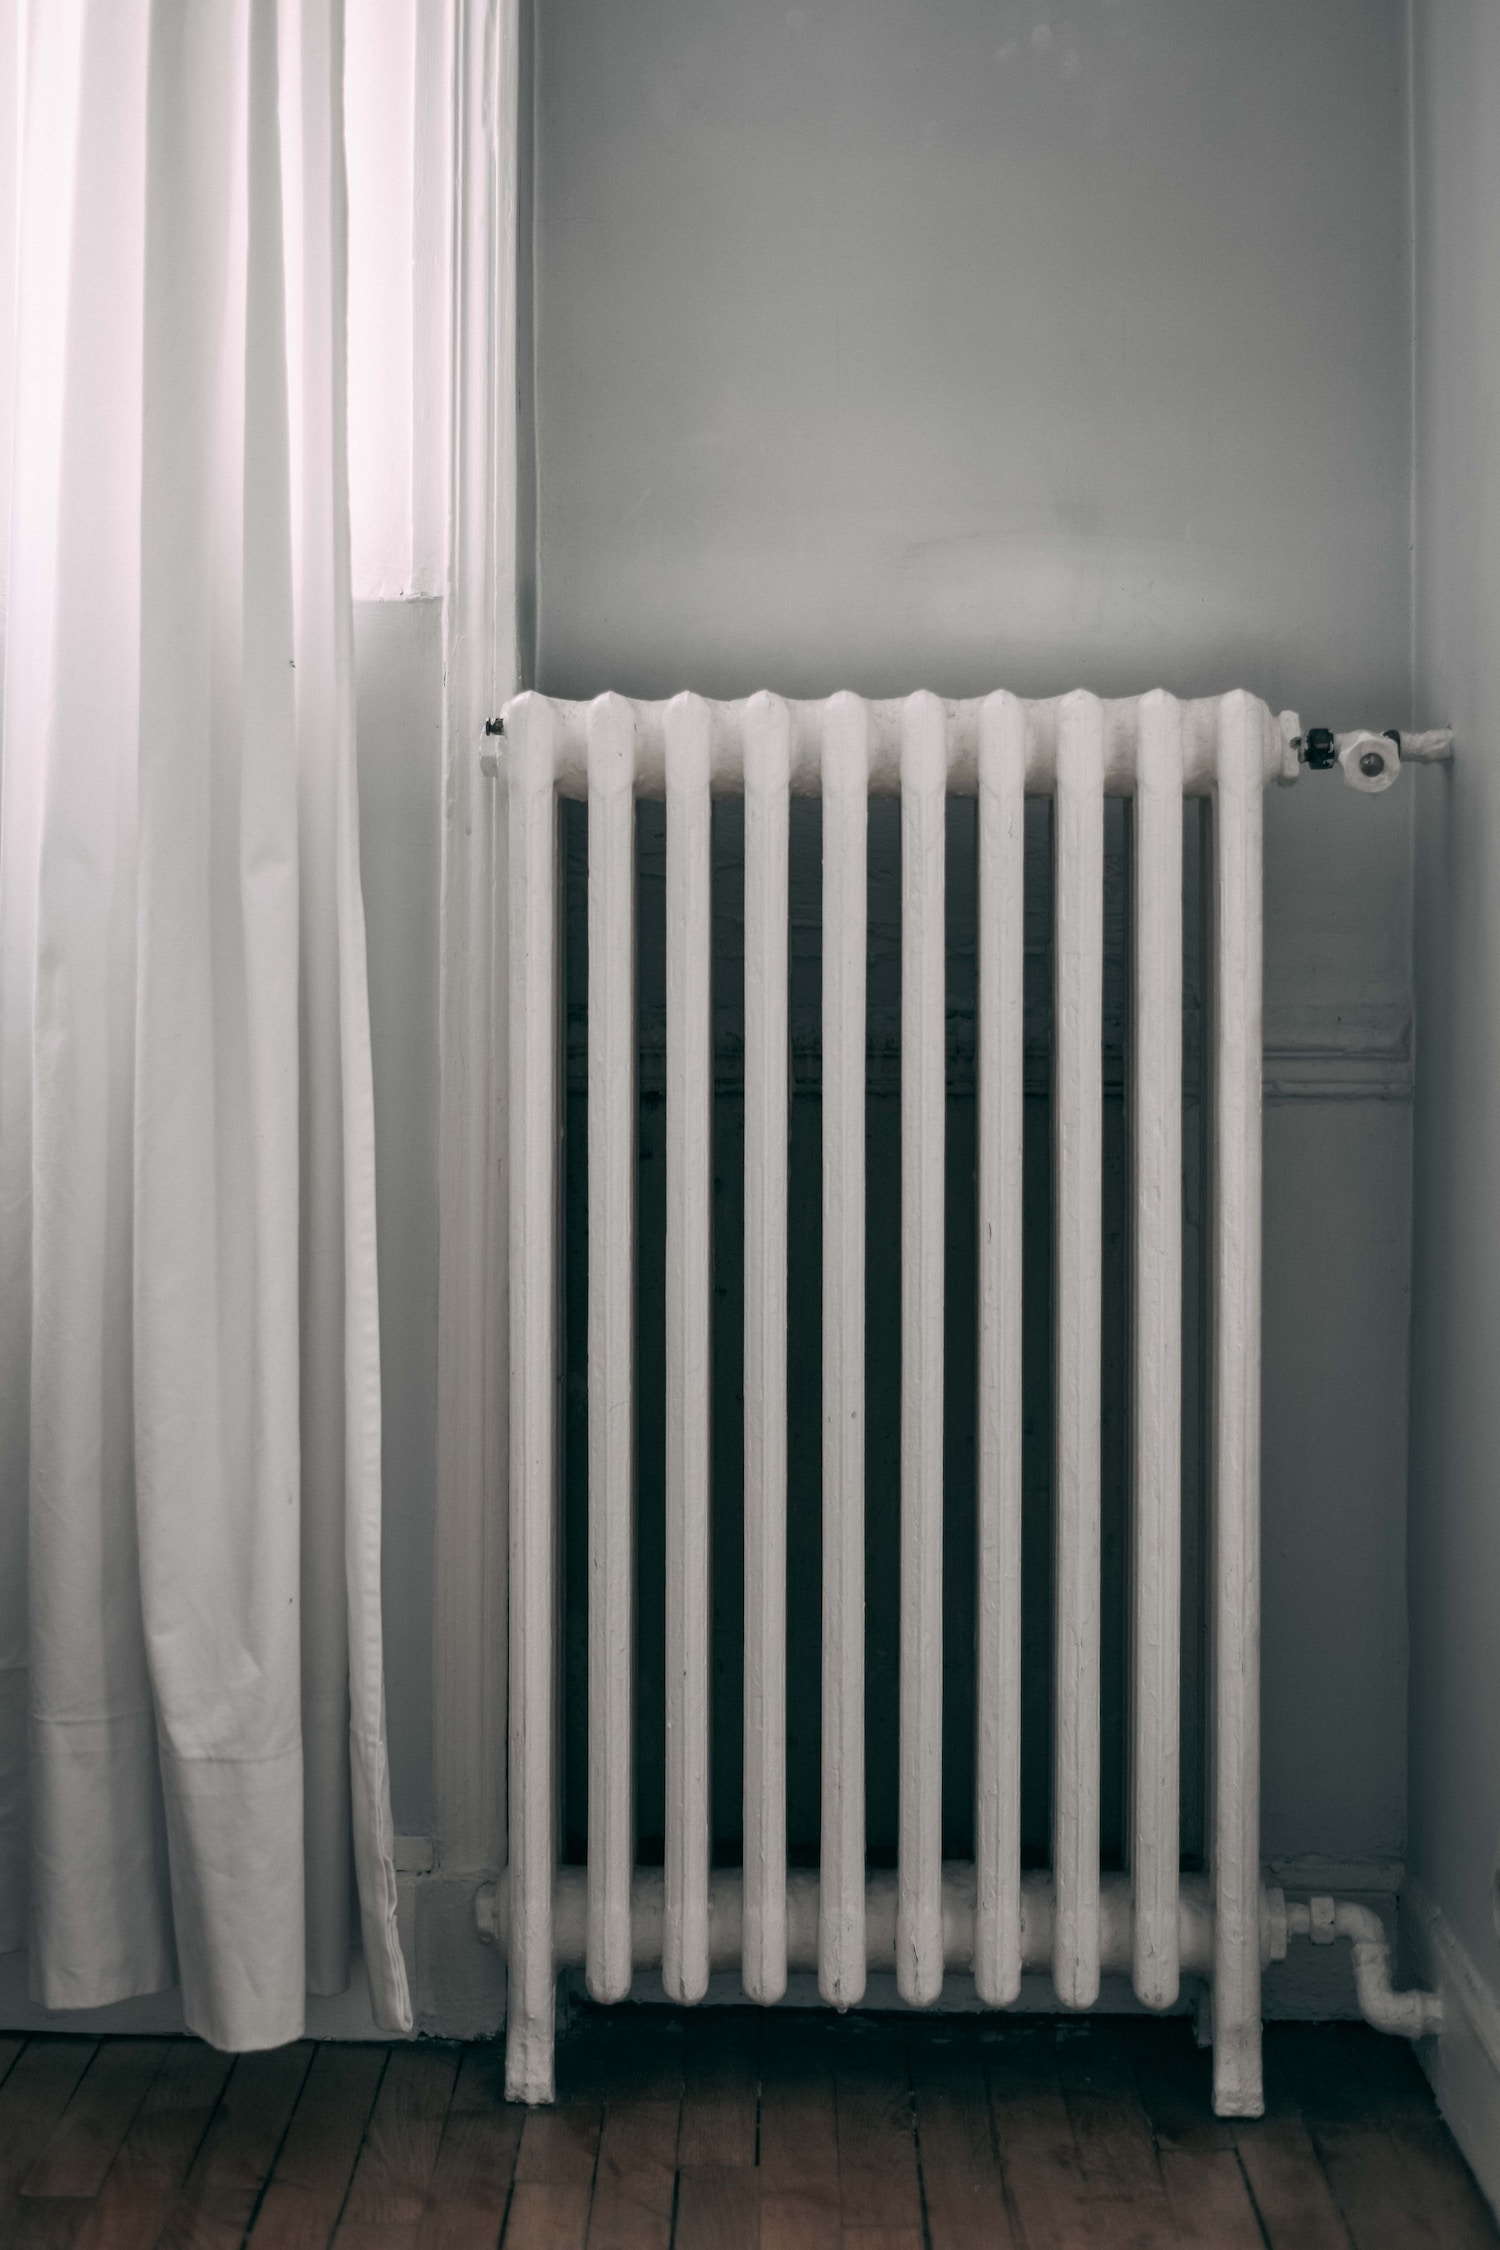 Our boiler maintenance tips include regularly bleeding your radiators